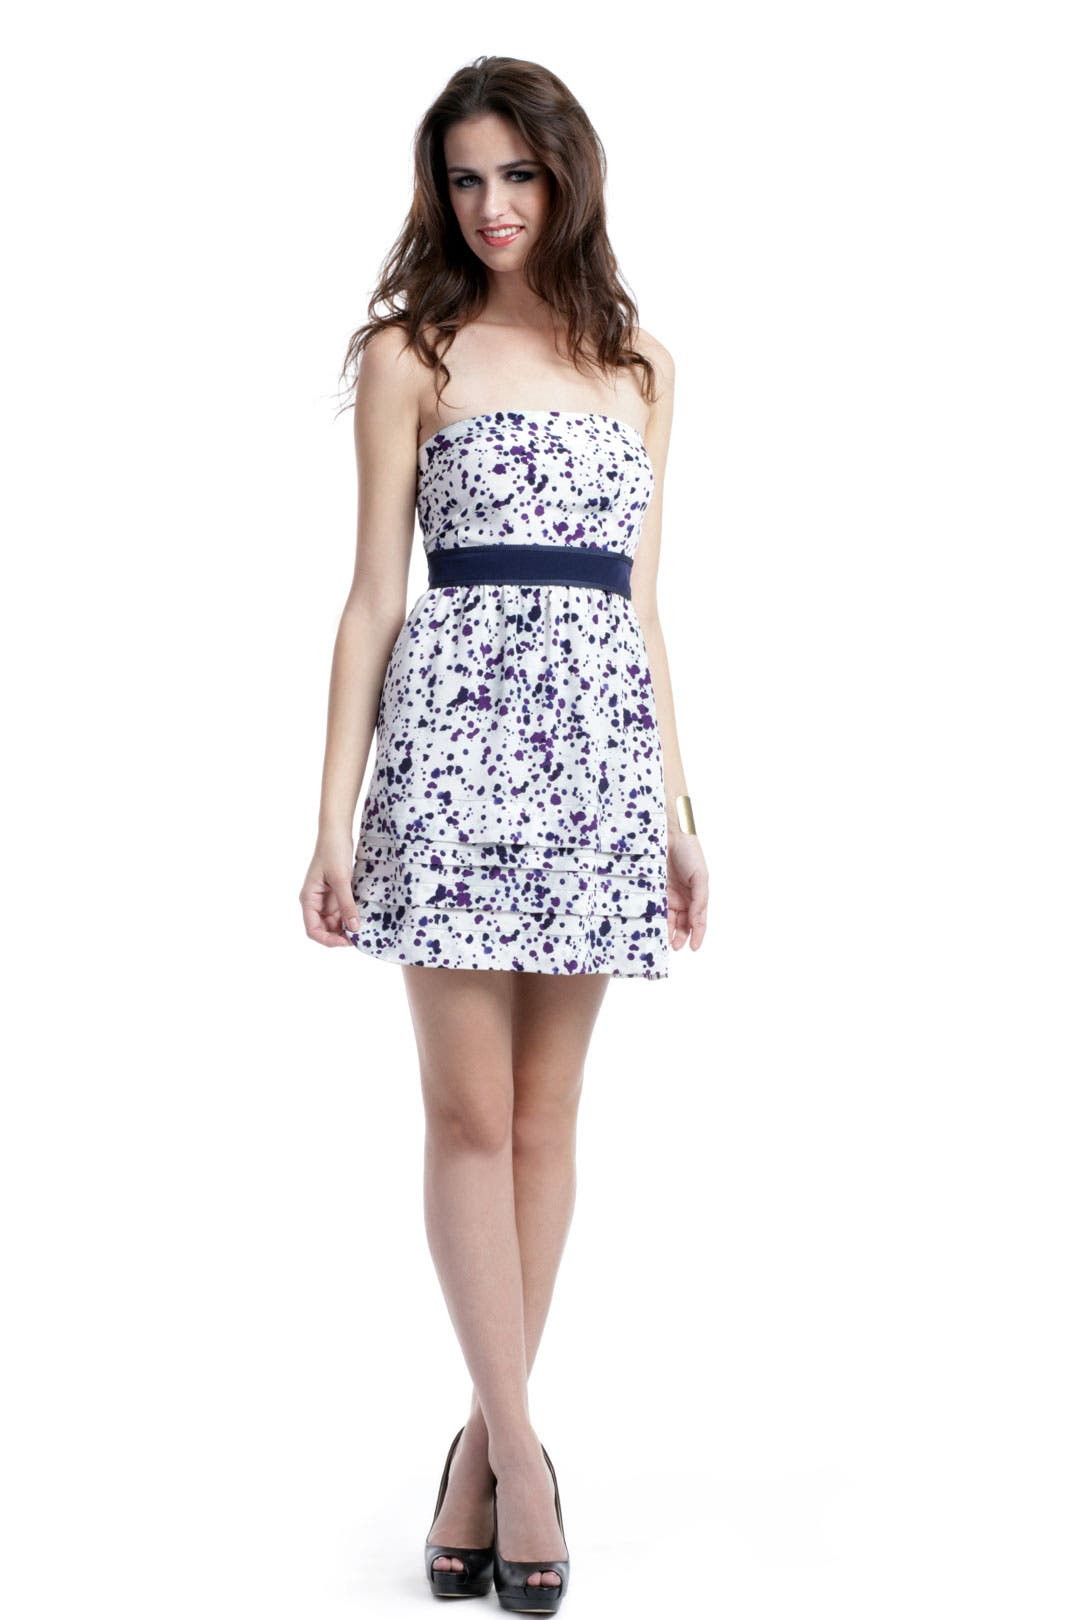 Paint Splatter Dress by Hanii Y